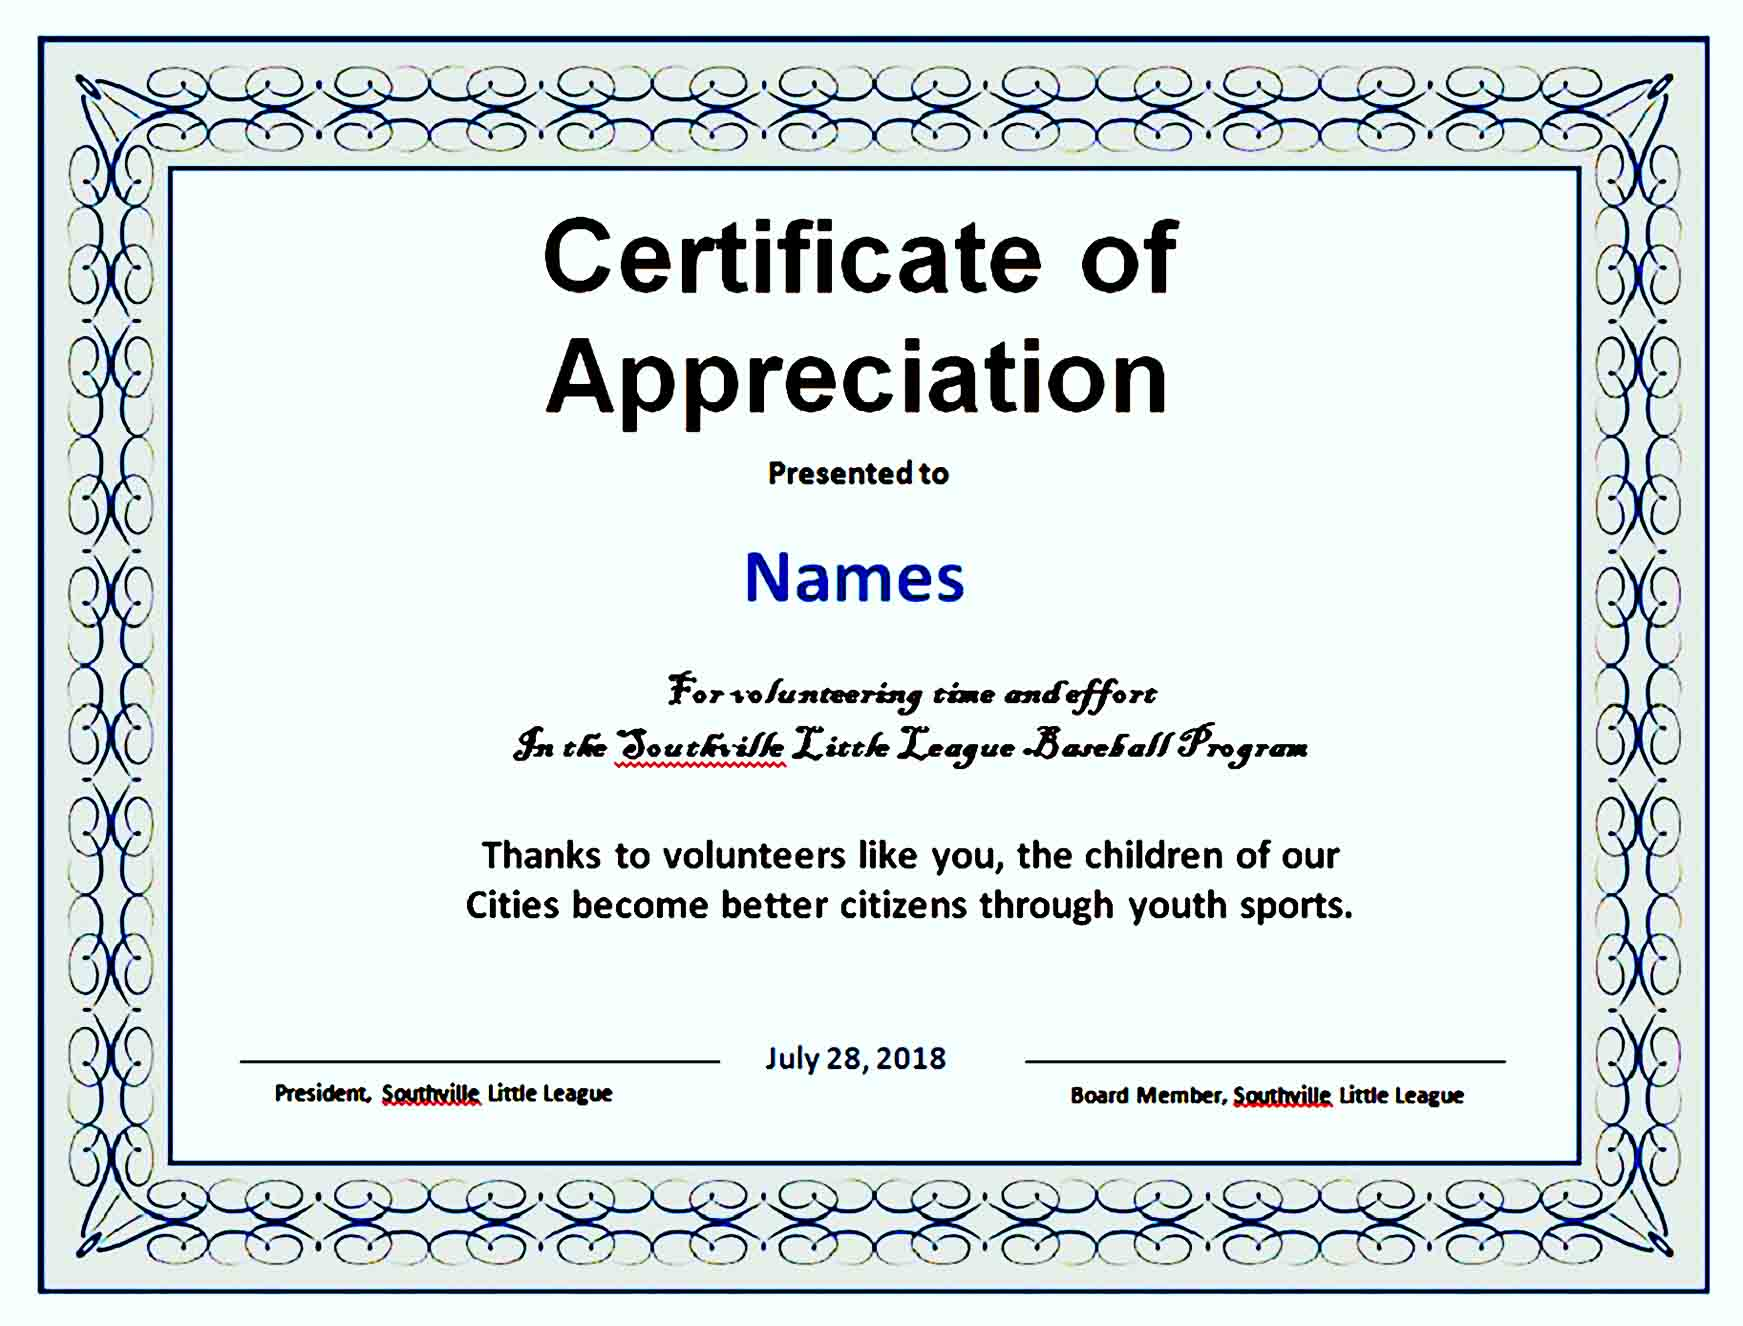 Certificate of Appreciation 13